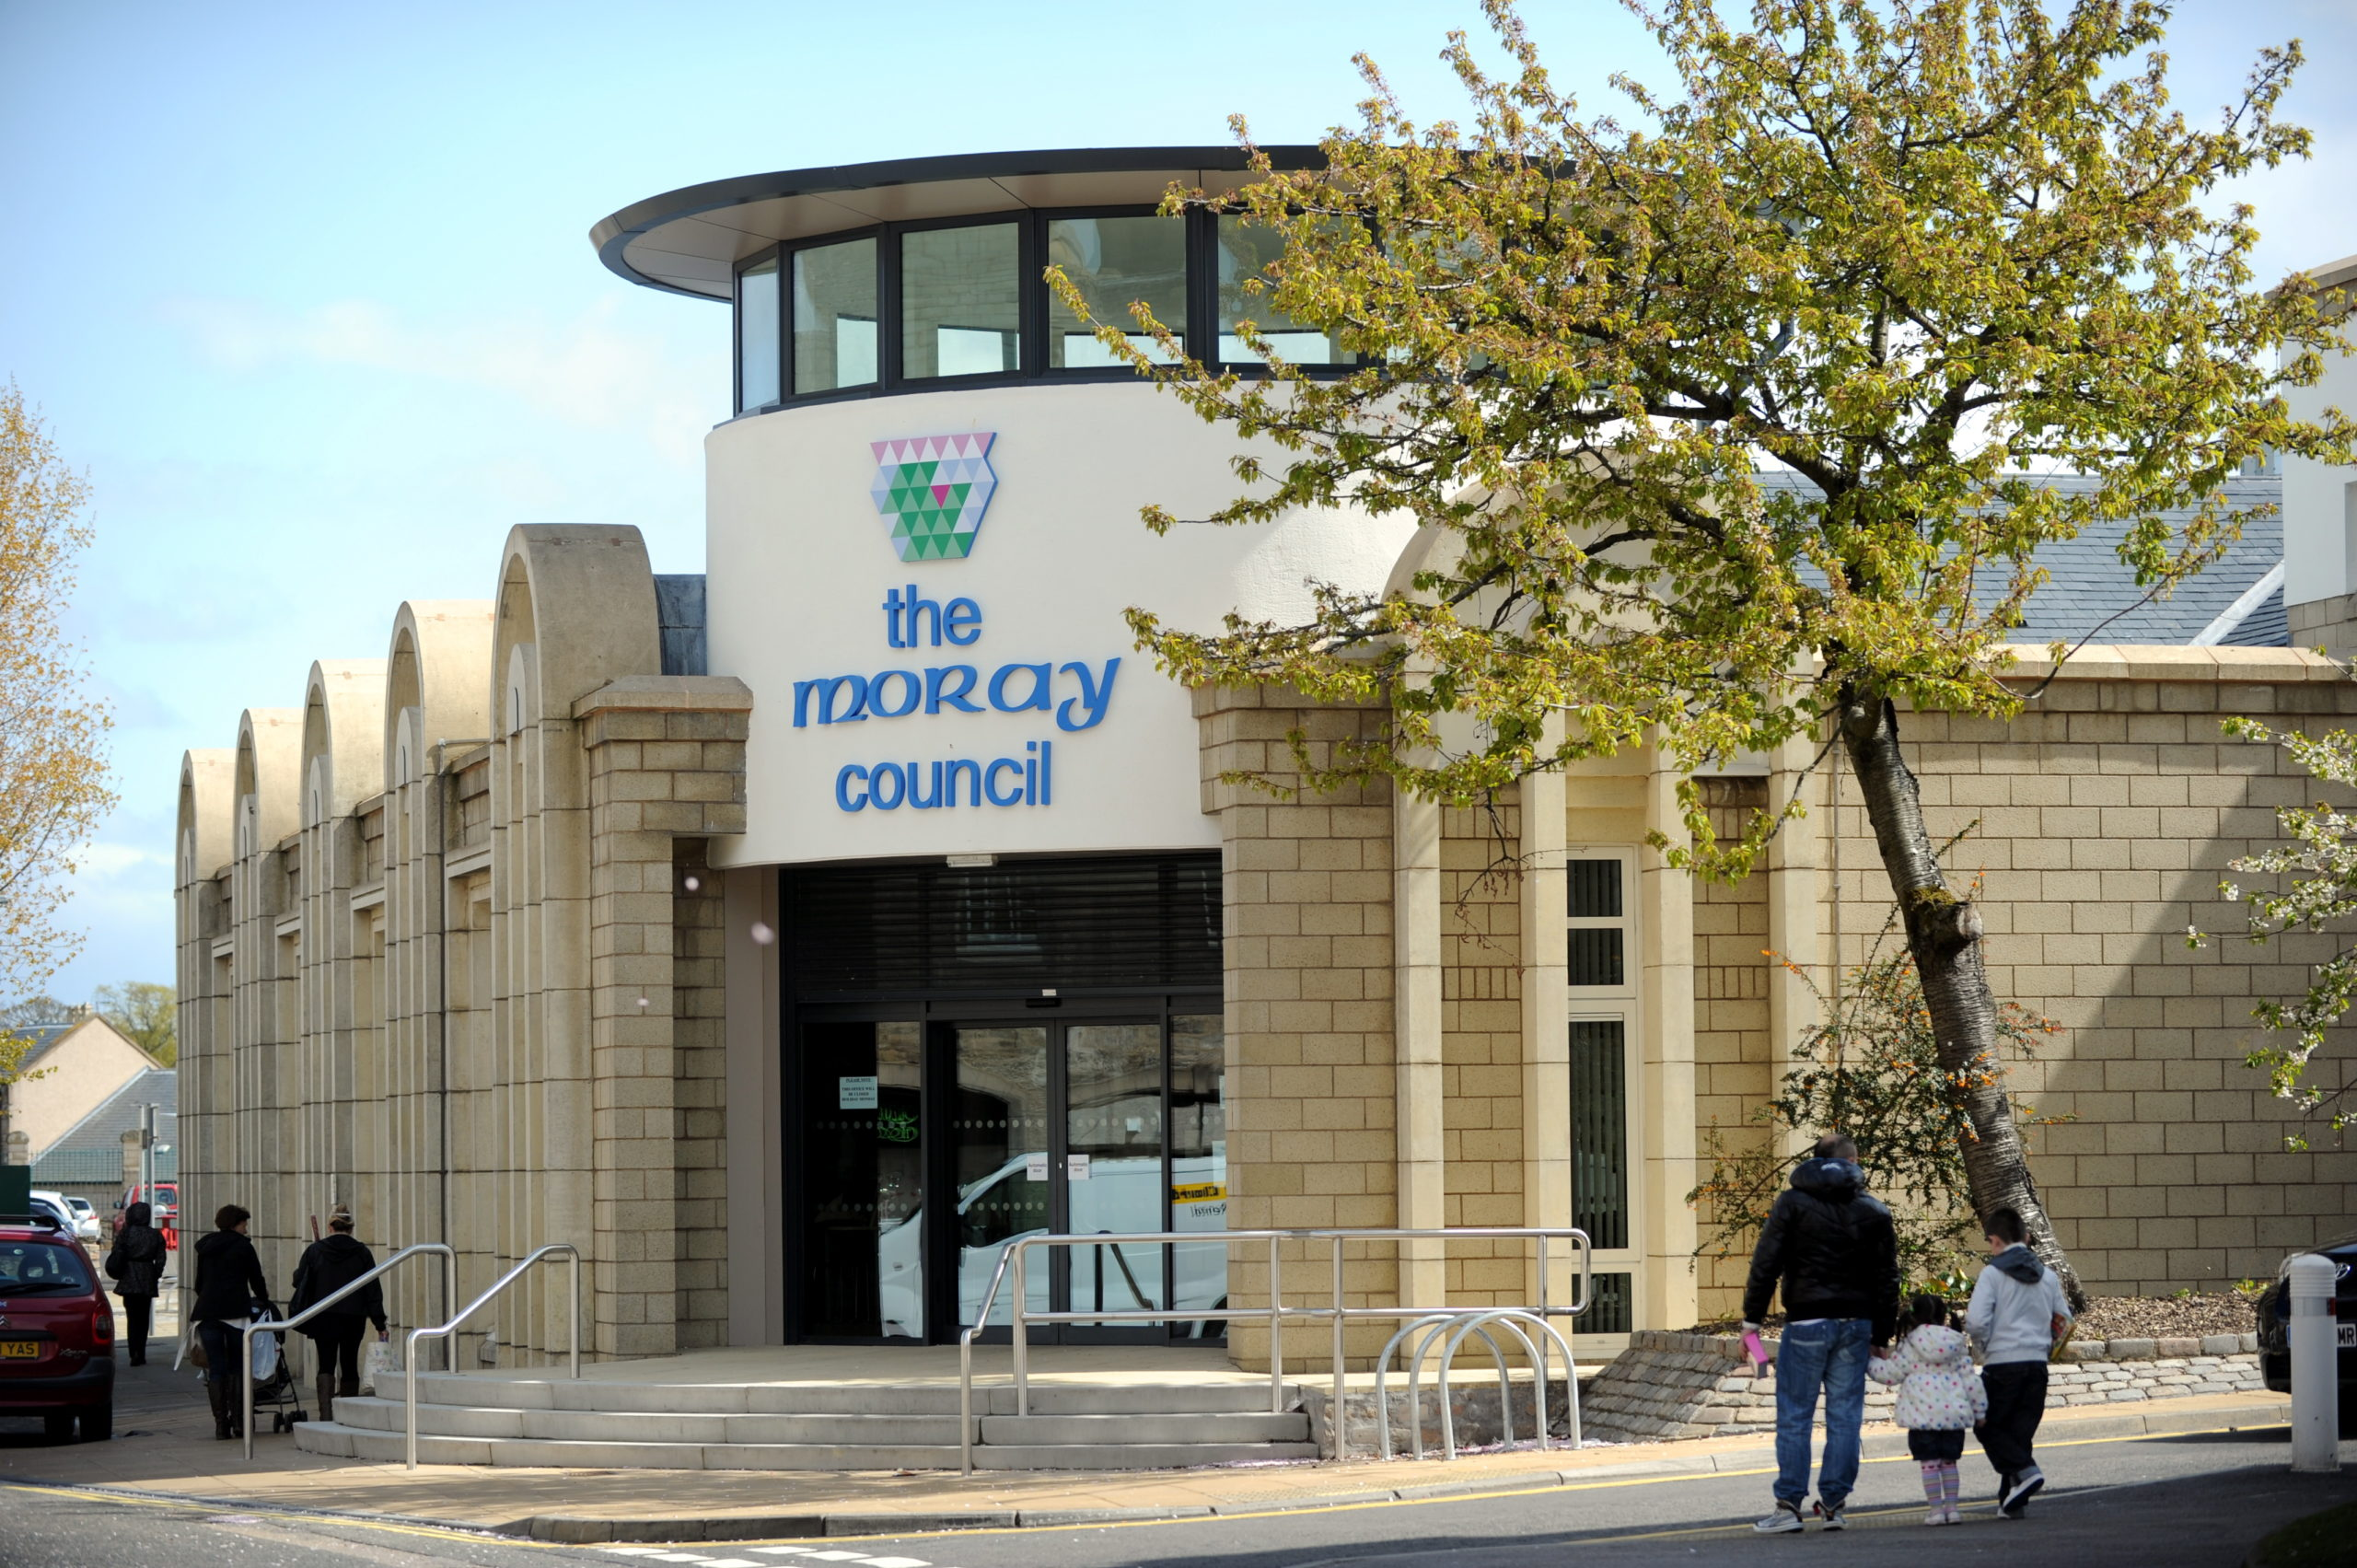 Moray Council is looking for suggestions for the name of the new nursery